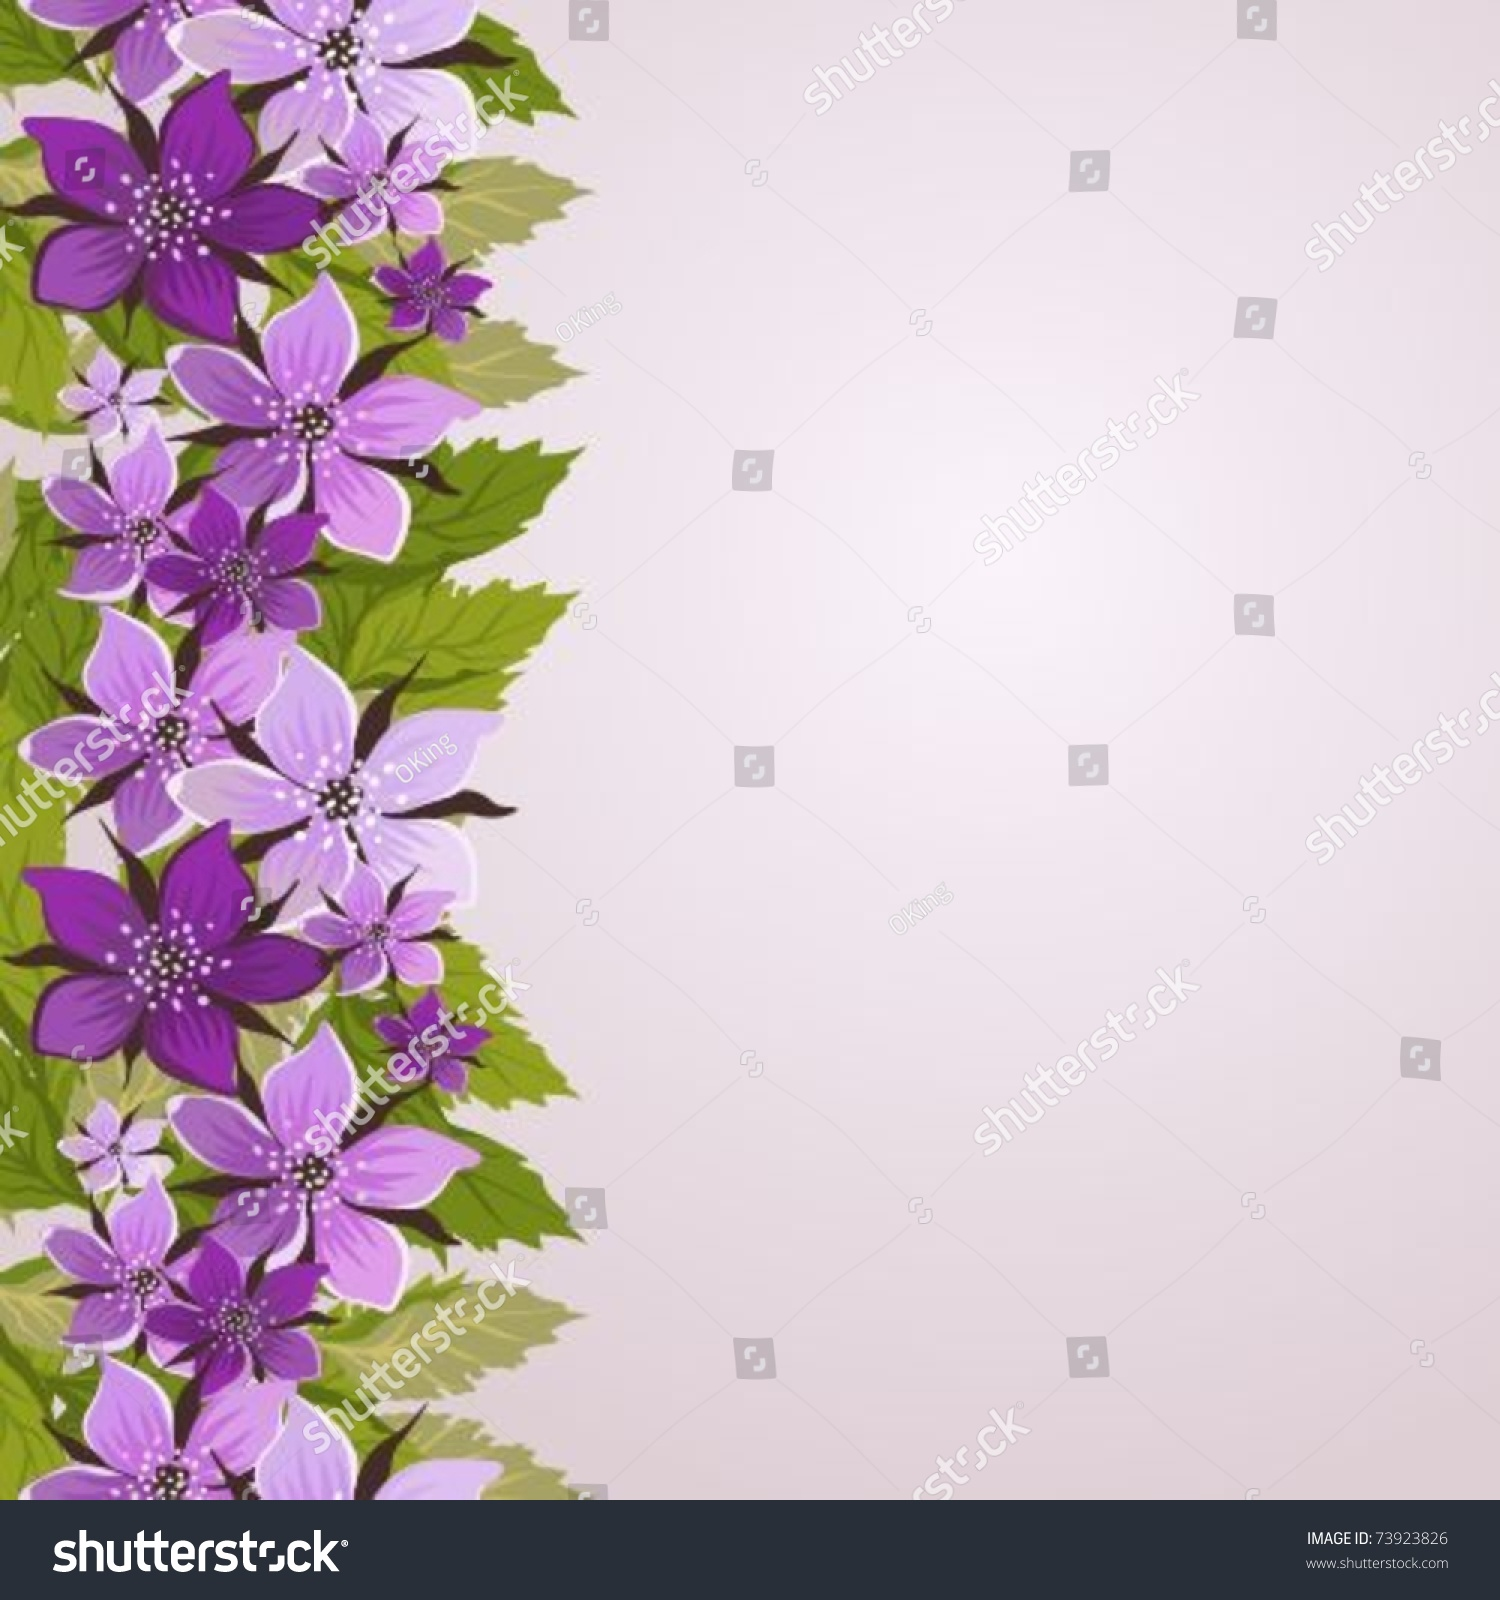 Spring Green Leaves And Flowers Background With Plants: Background Border Lilac Flowers Green Leaves Stock Vector